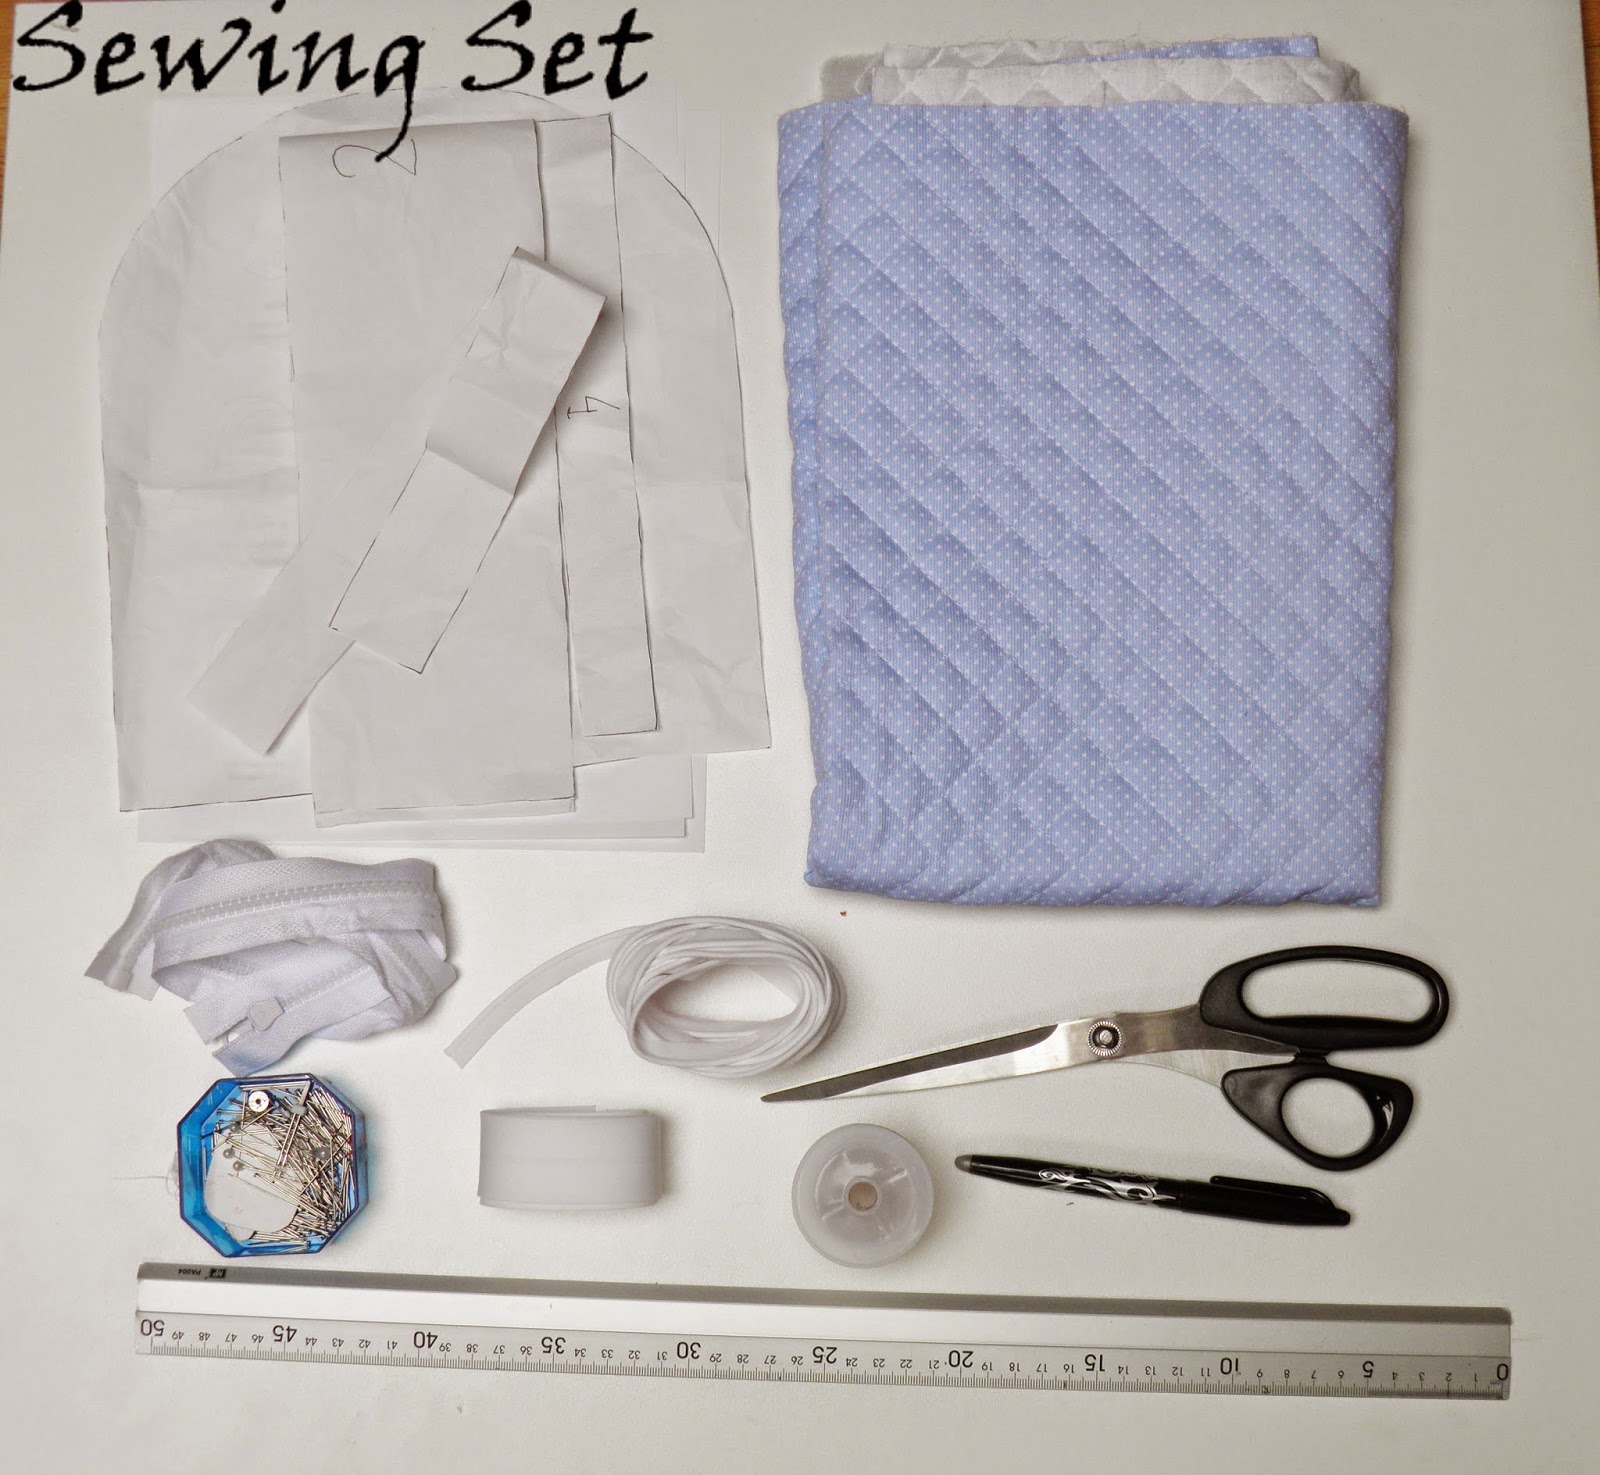 Sewing Set: TUTORIAL MOCHILA INFANTIL DE PIQUÉ